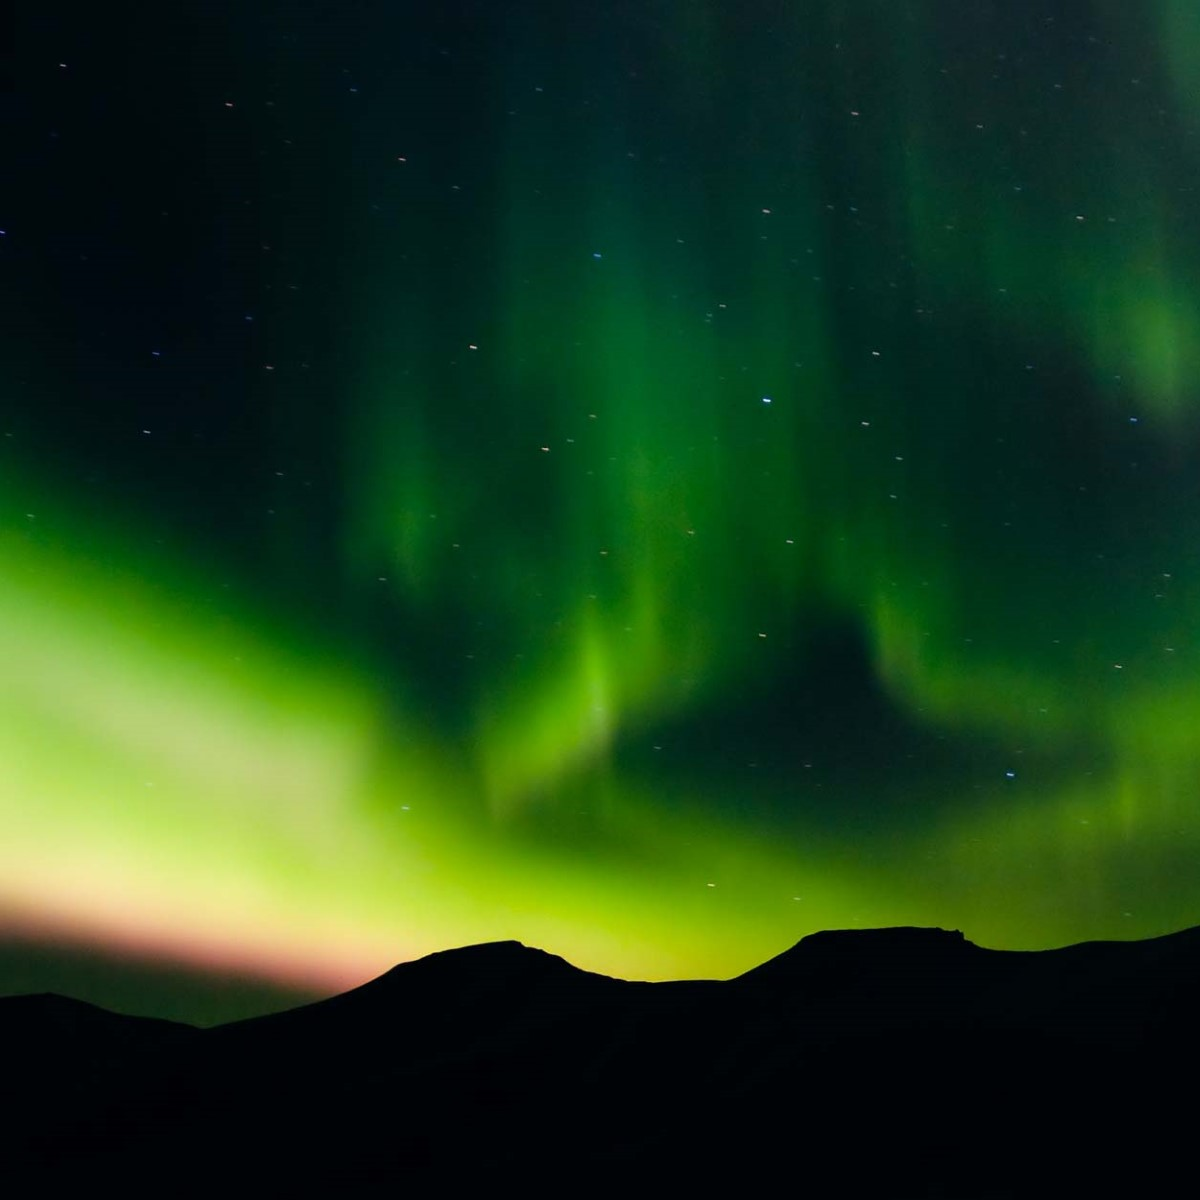 Lights Are Us: 10 Tips On How To Photograph The Northern Lights